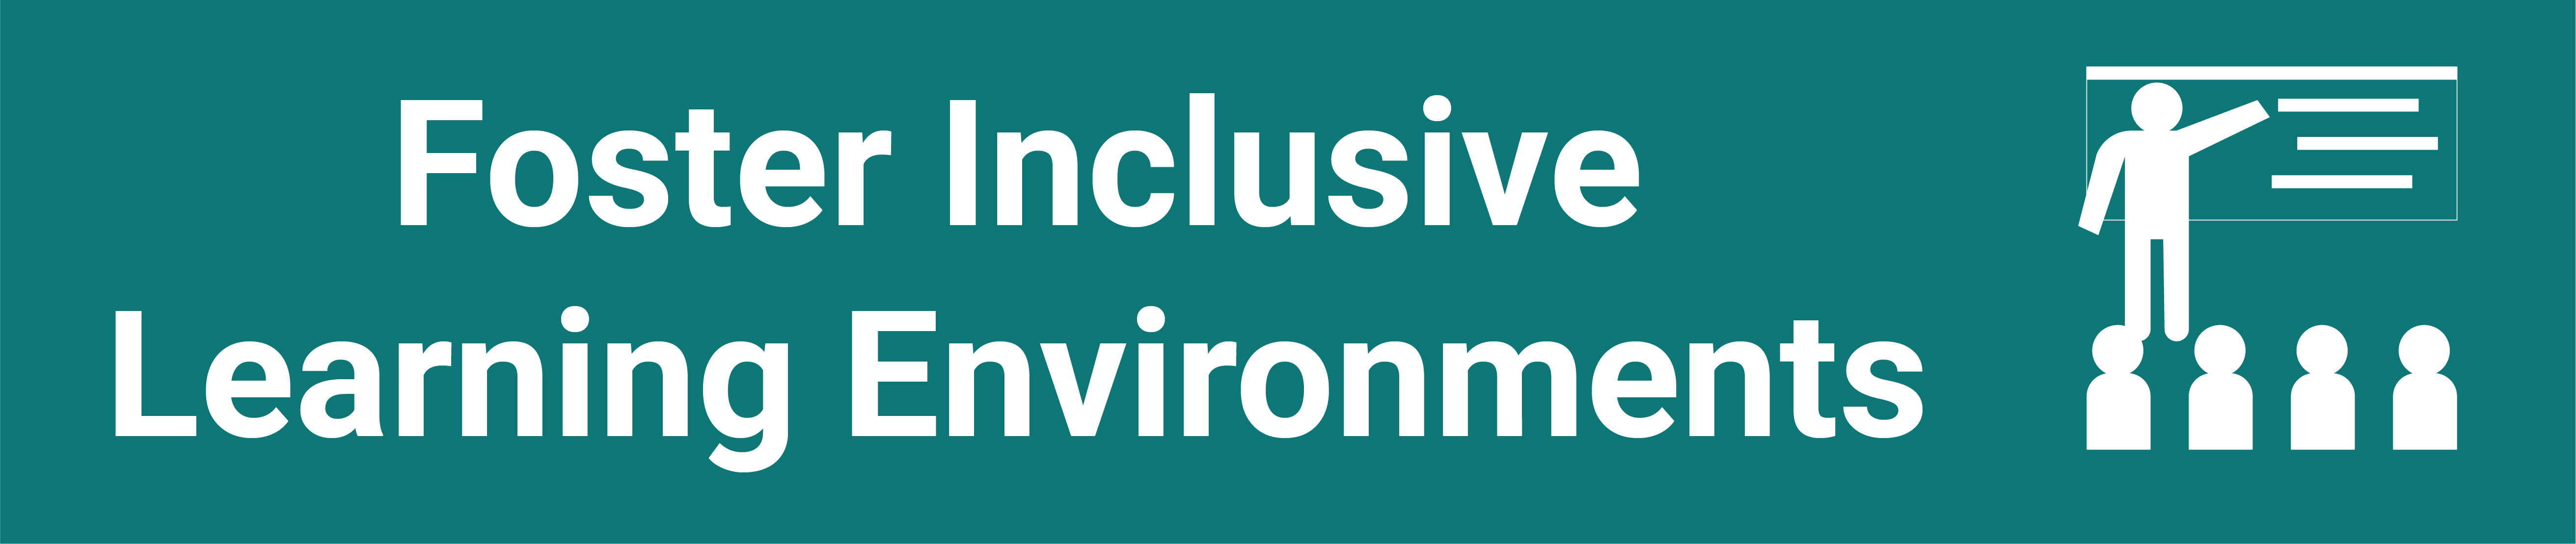 foster inclusive learning environments